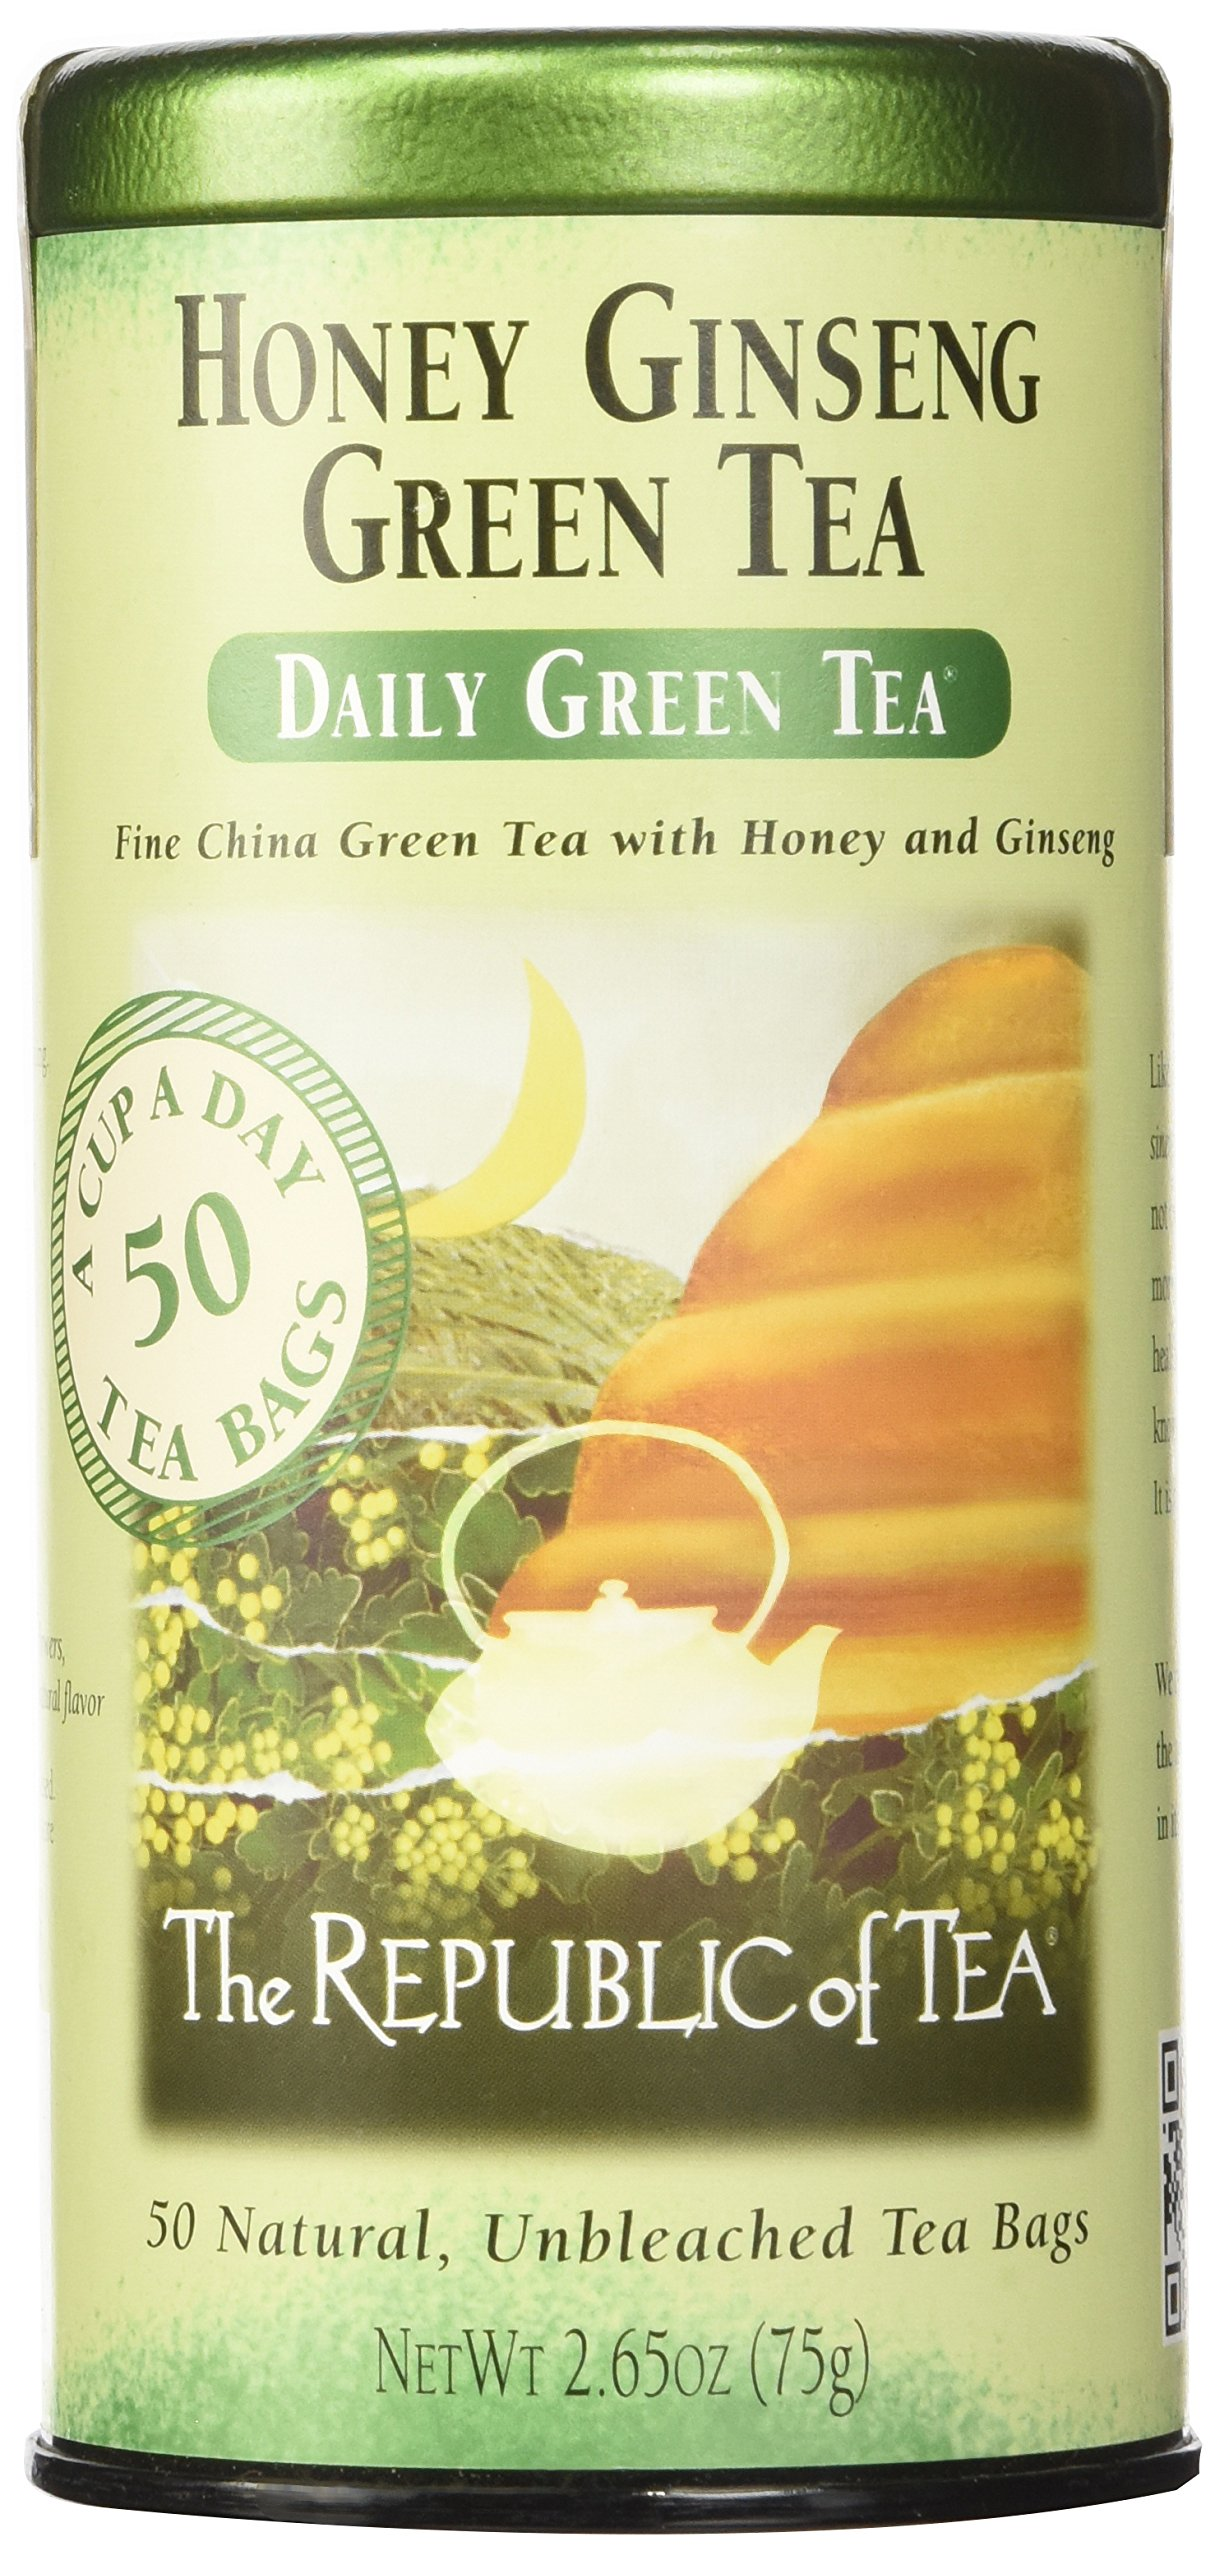 The Republic of Tea, Honey Ginseng Green Tea, Caffeinated, 50 Tea Bags